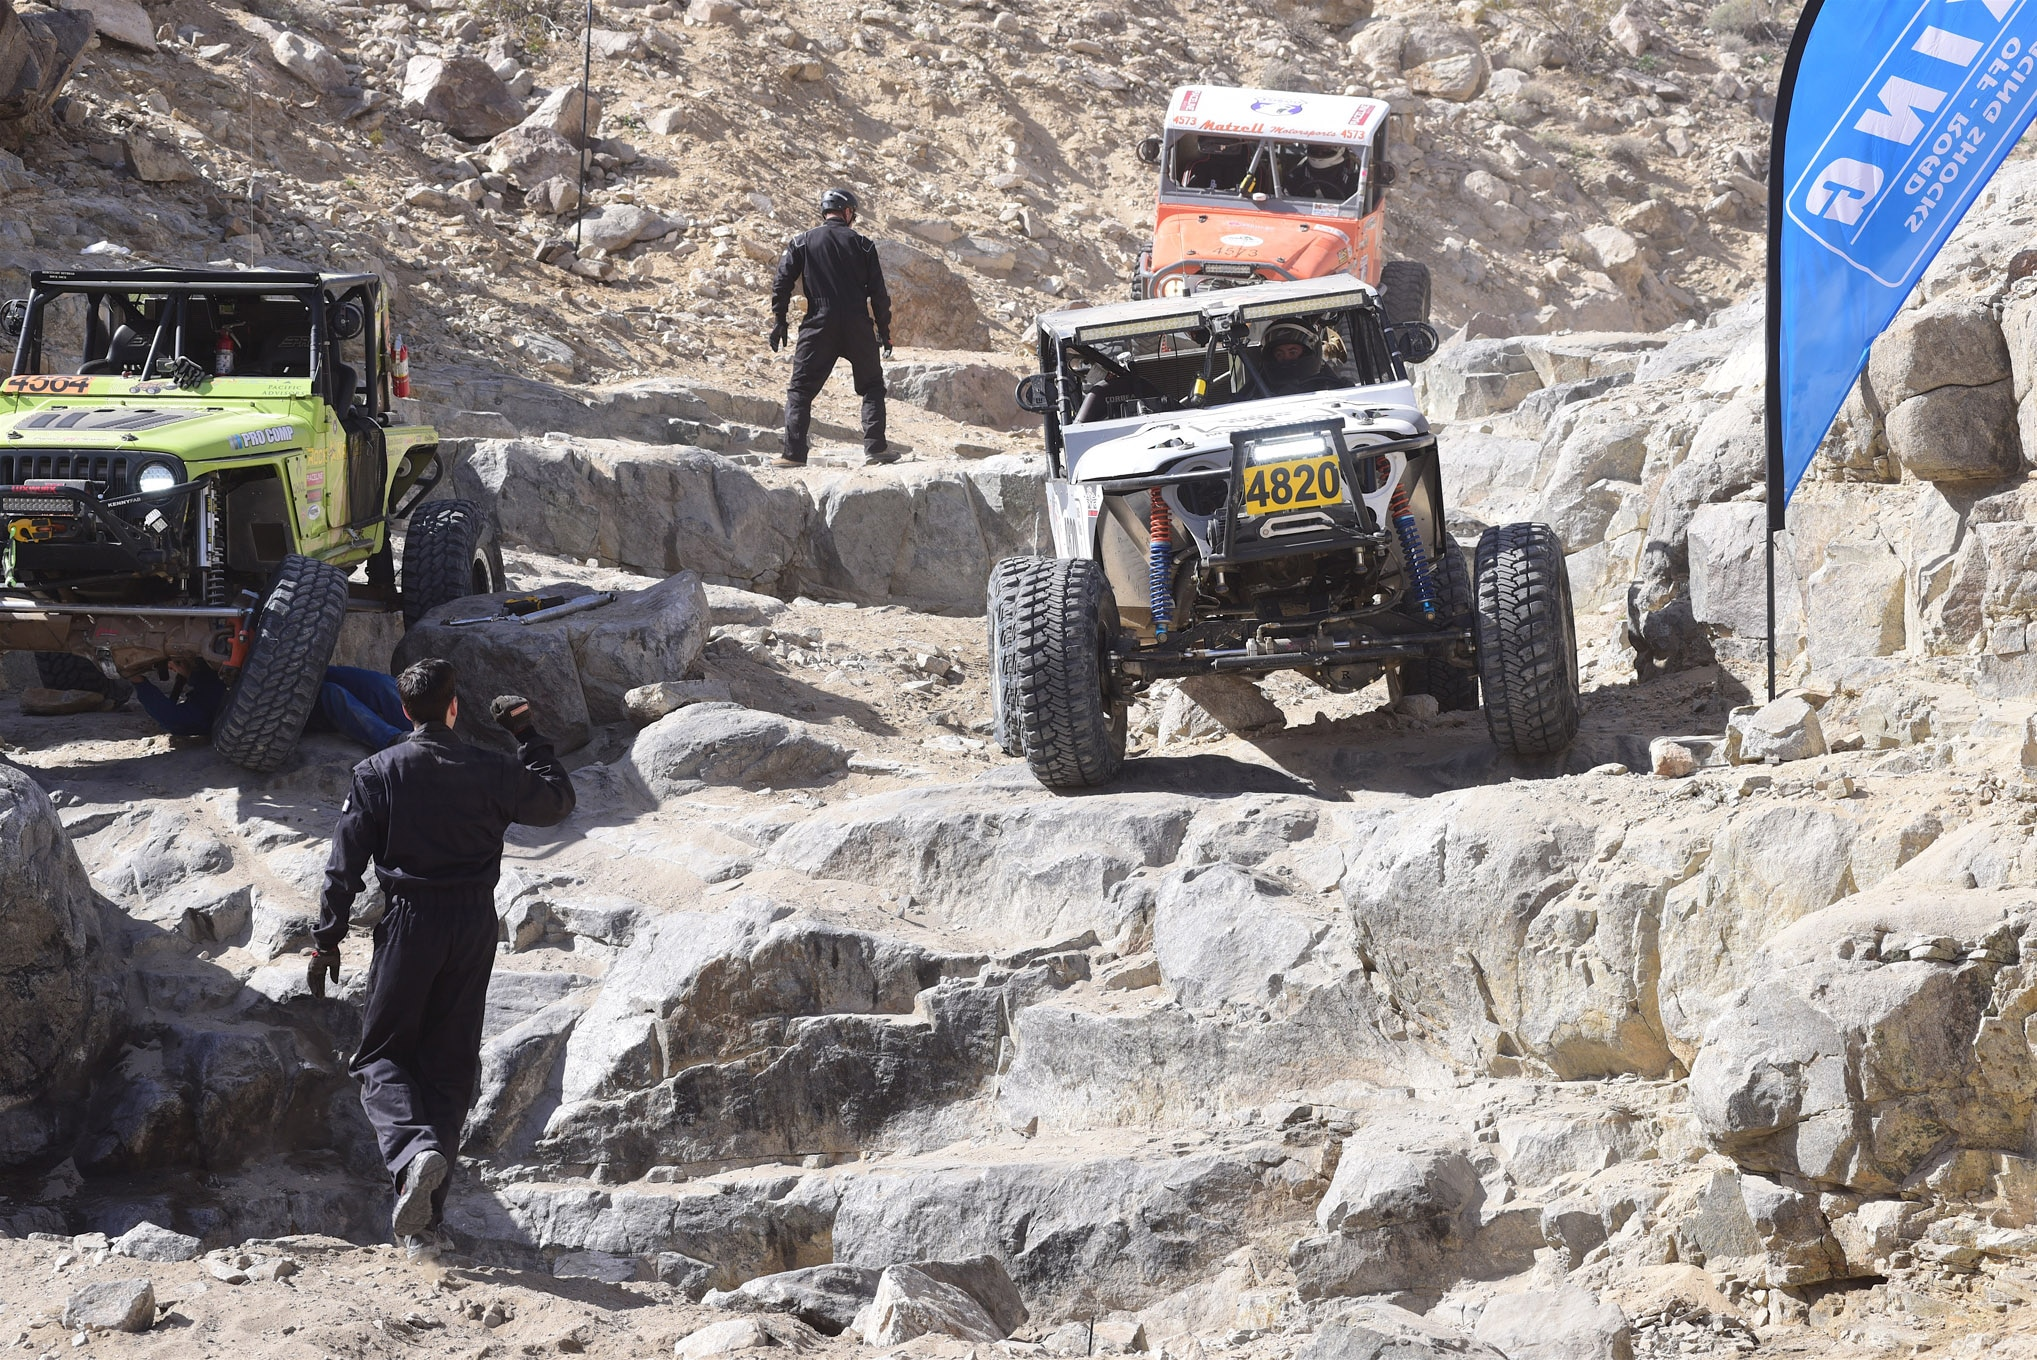 131 2017 king of the hammers koh racecar action on course stuart bourdon photographer